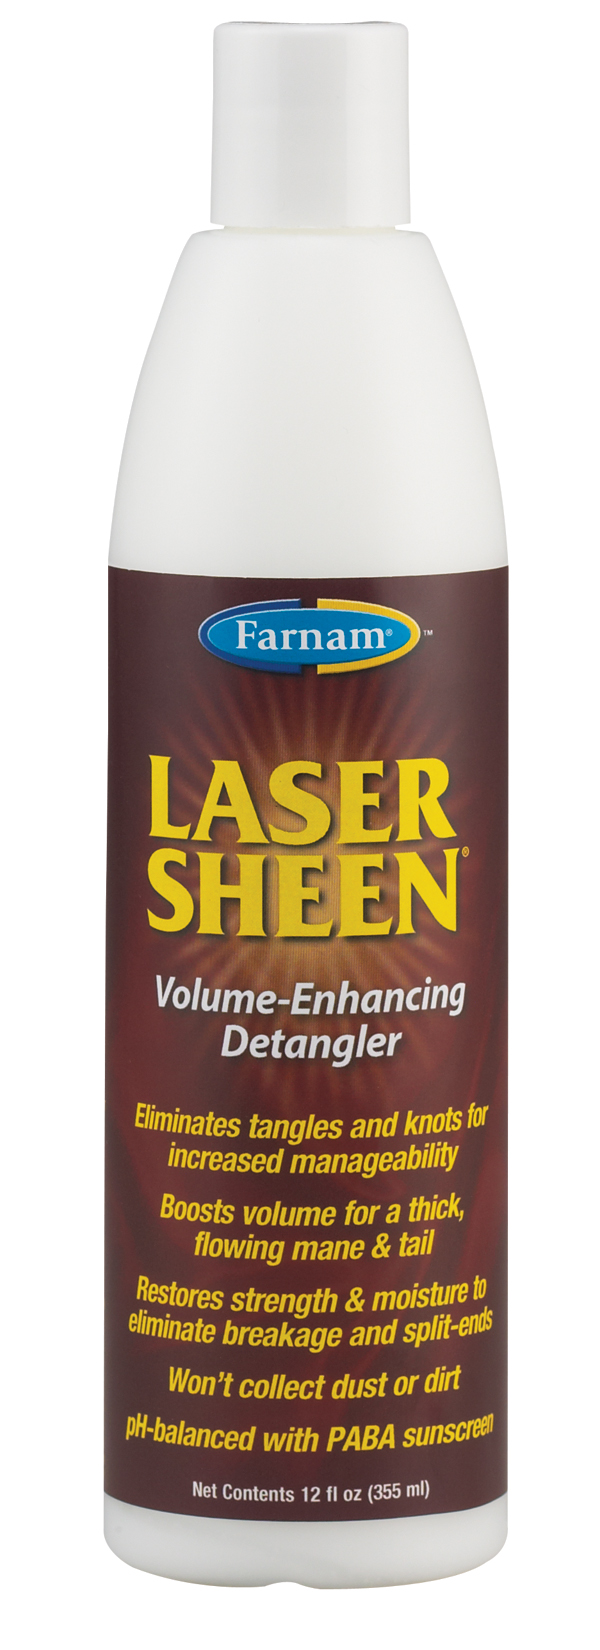 Laser Sheen® Volume-Enhancing Detangler